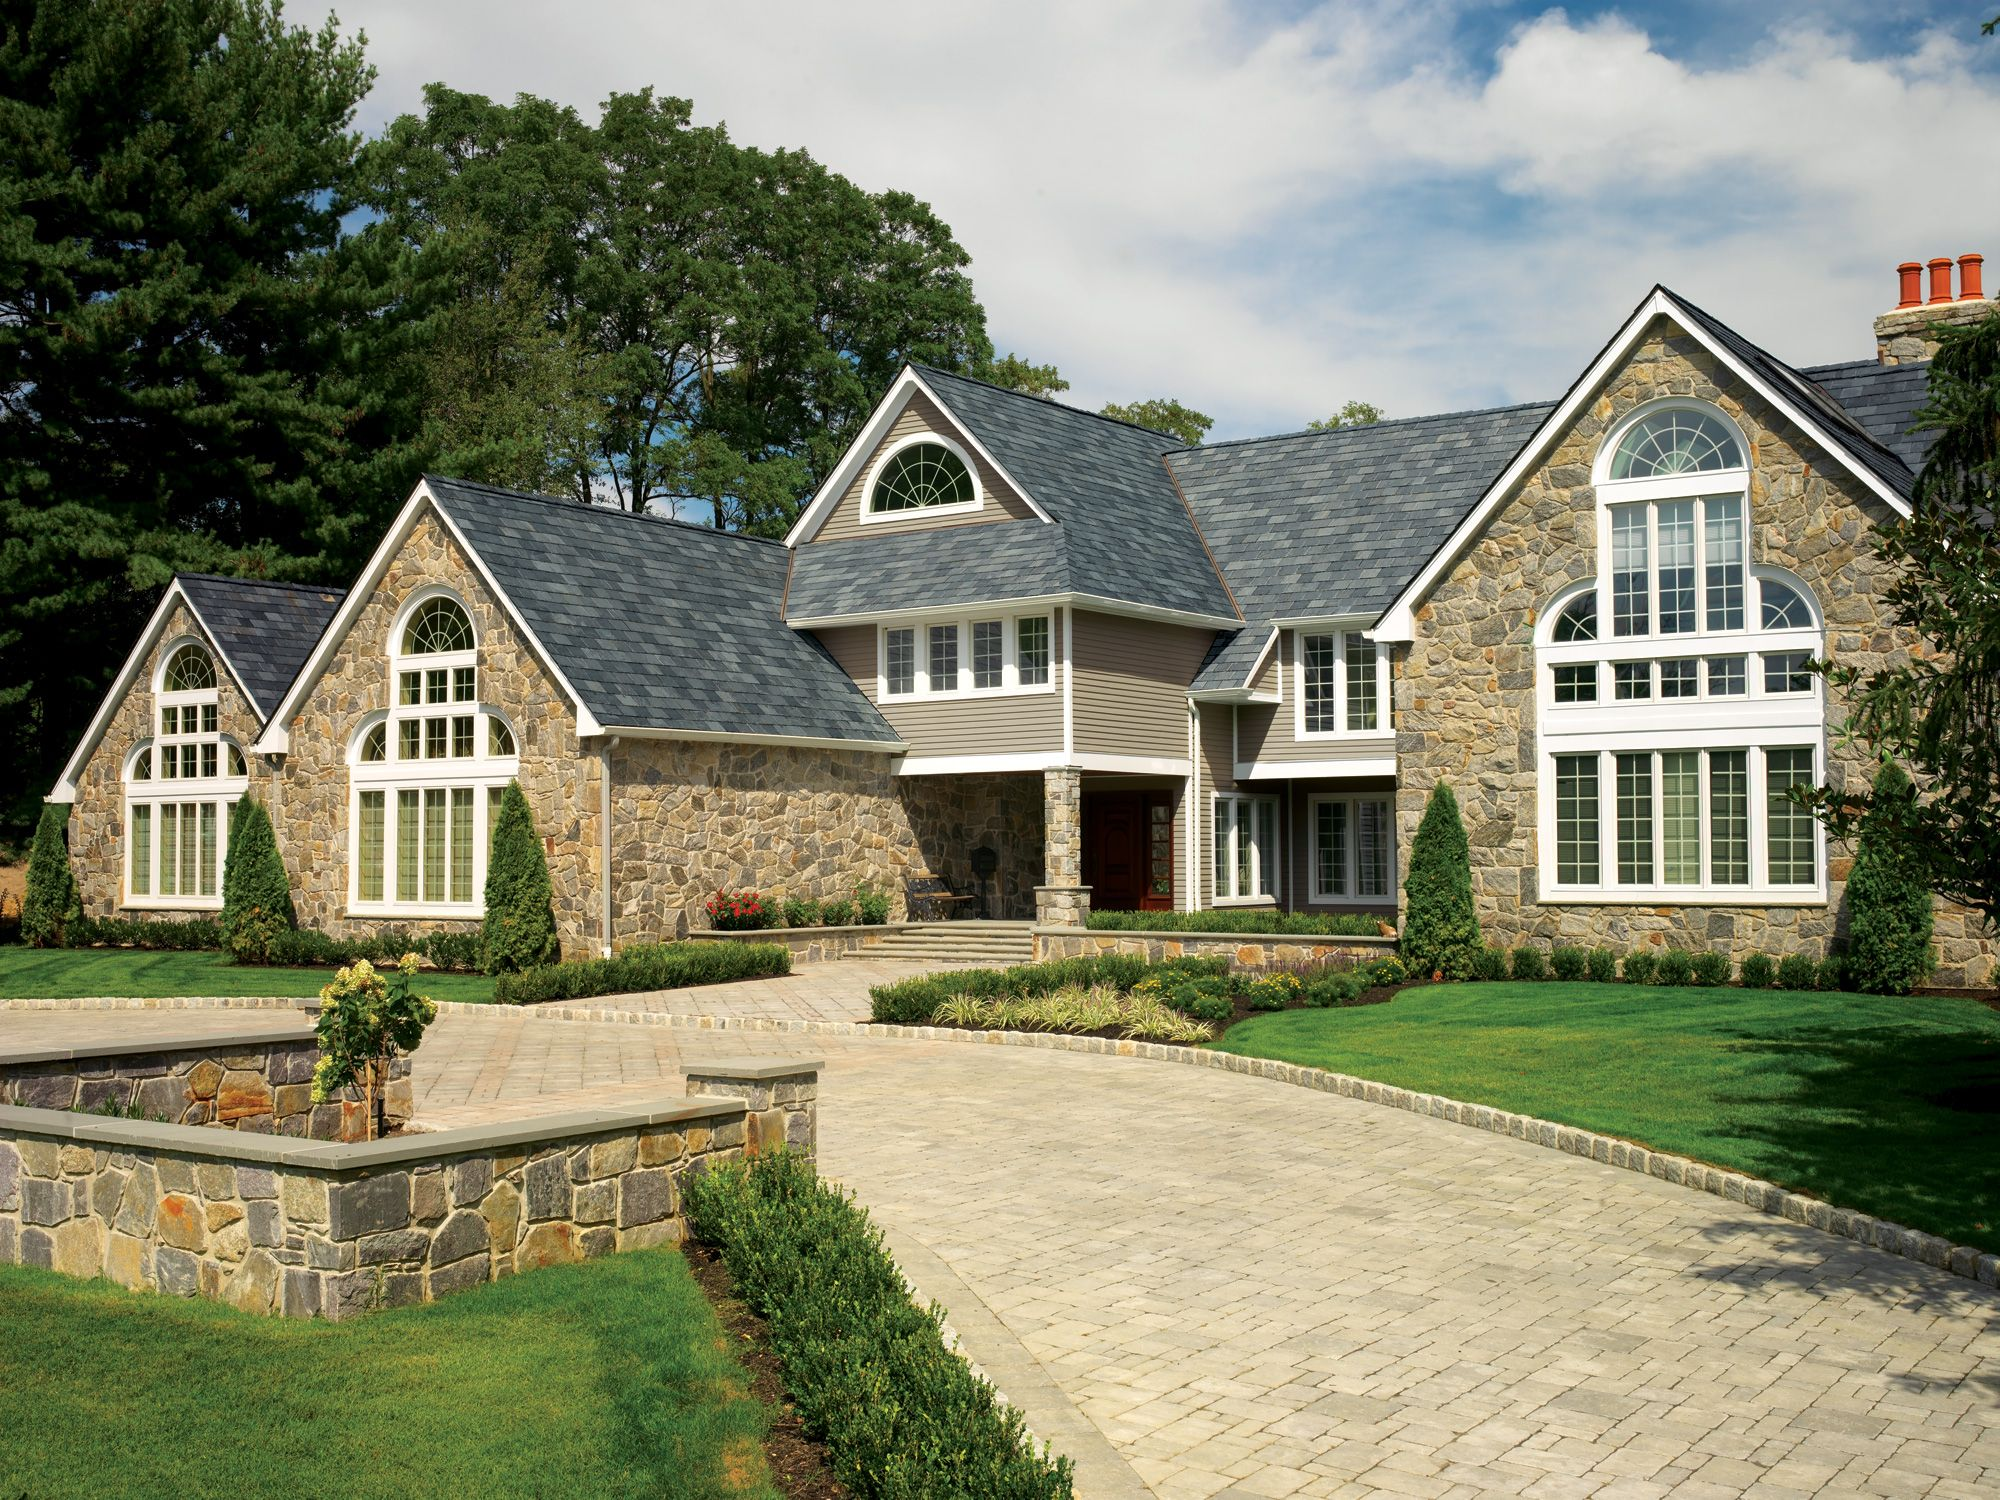 Gaf Truslate Slate Roof Onyx Theroofagency Com 817 722 5866 Roofing Slate Roof Roofing Contractors